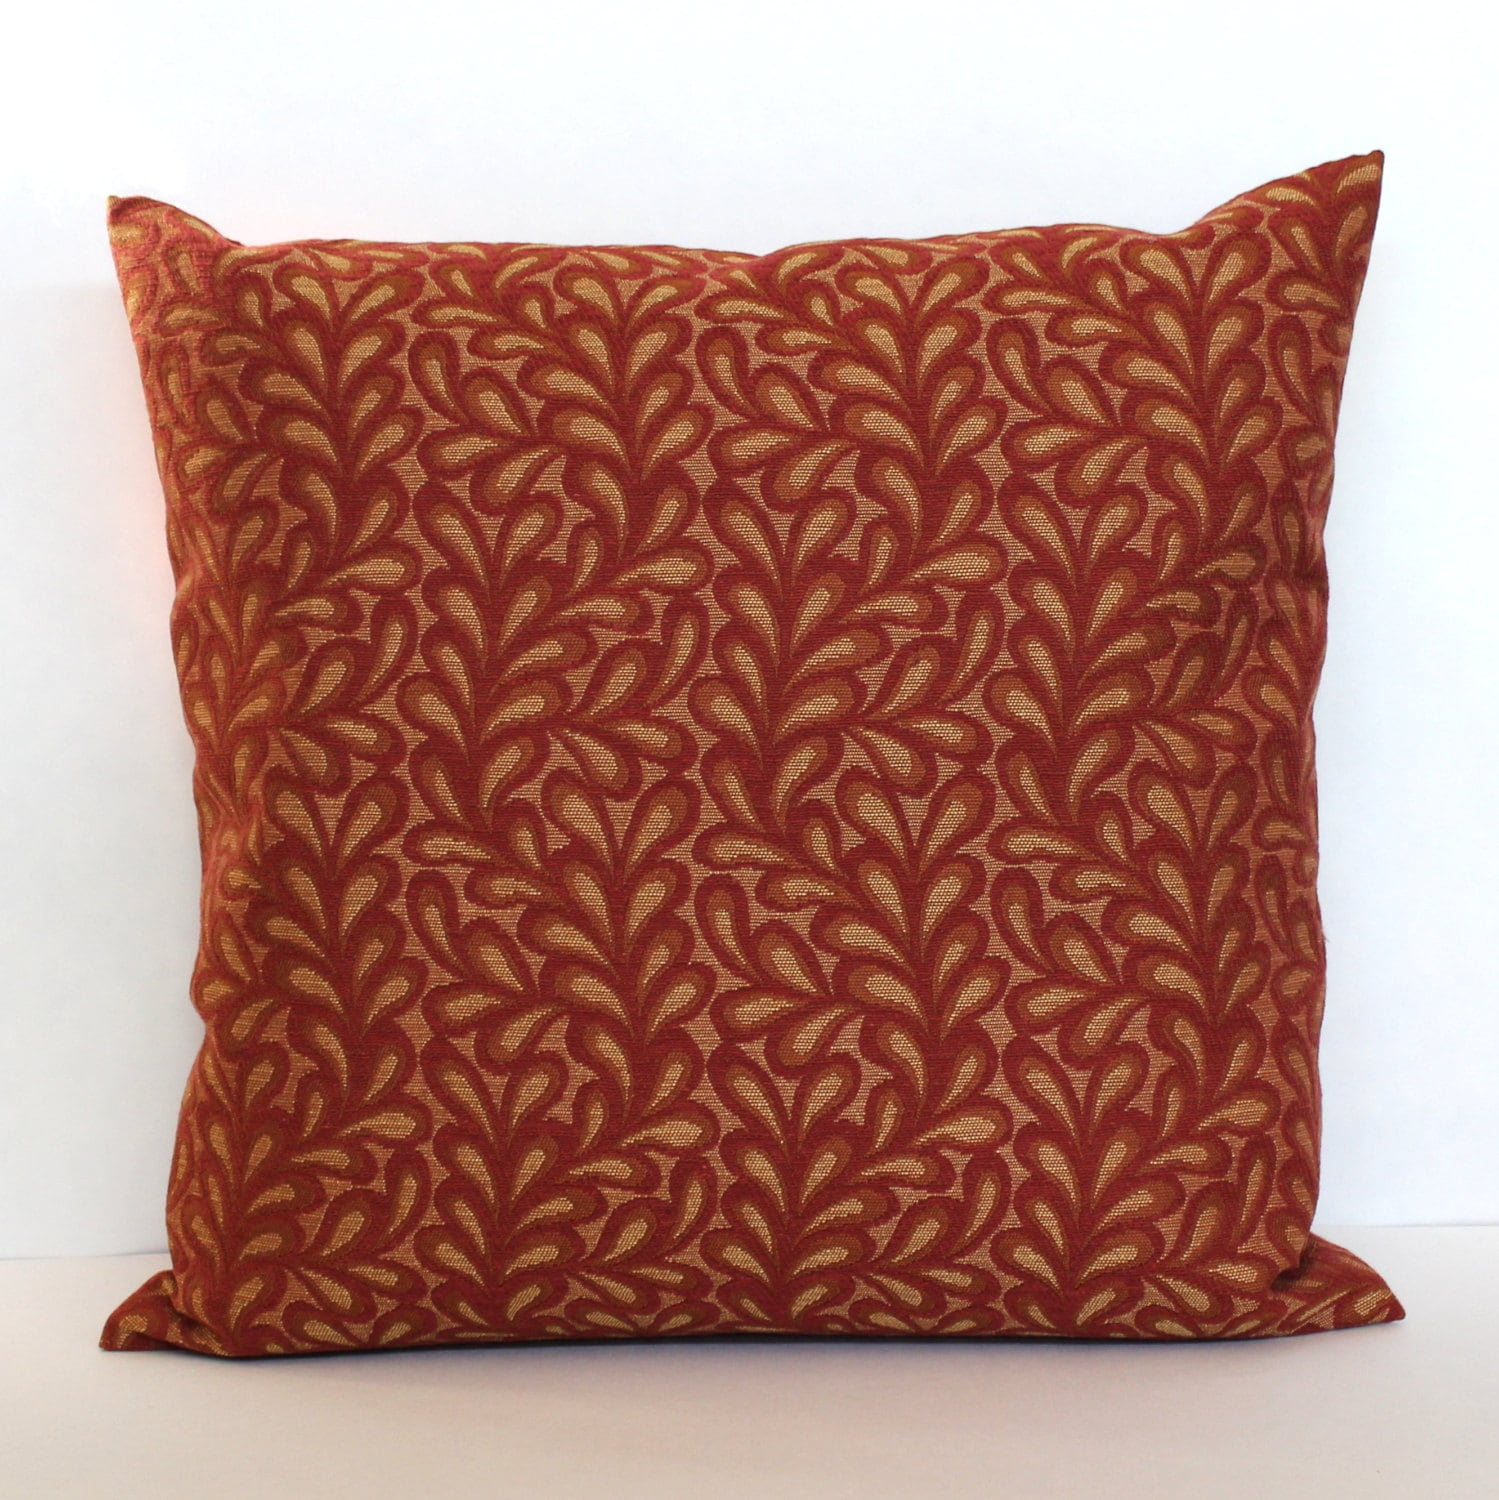 Throw Pillows Red And Gold : Throw Pillow Cover Brick Red and Gold Decorative Leaf and Vine